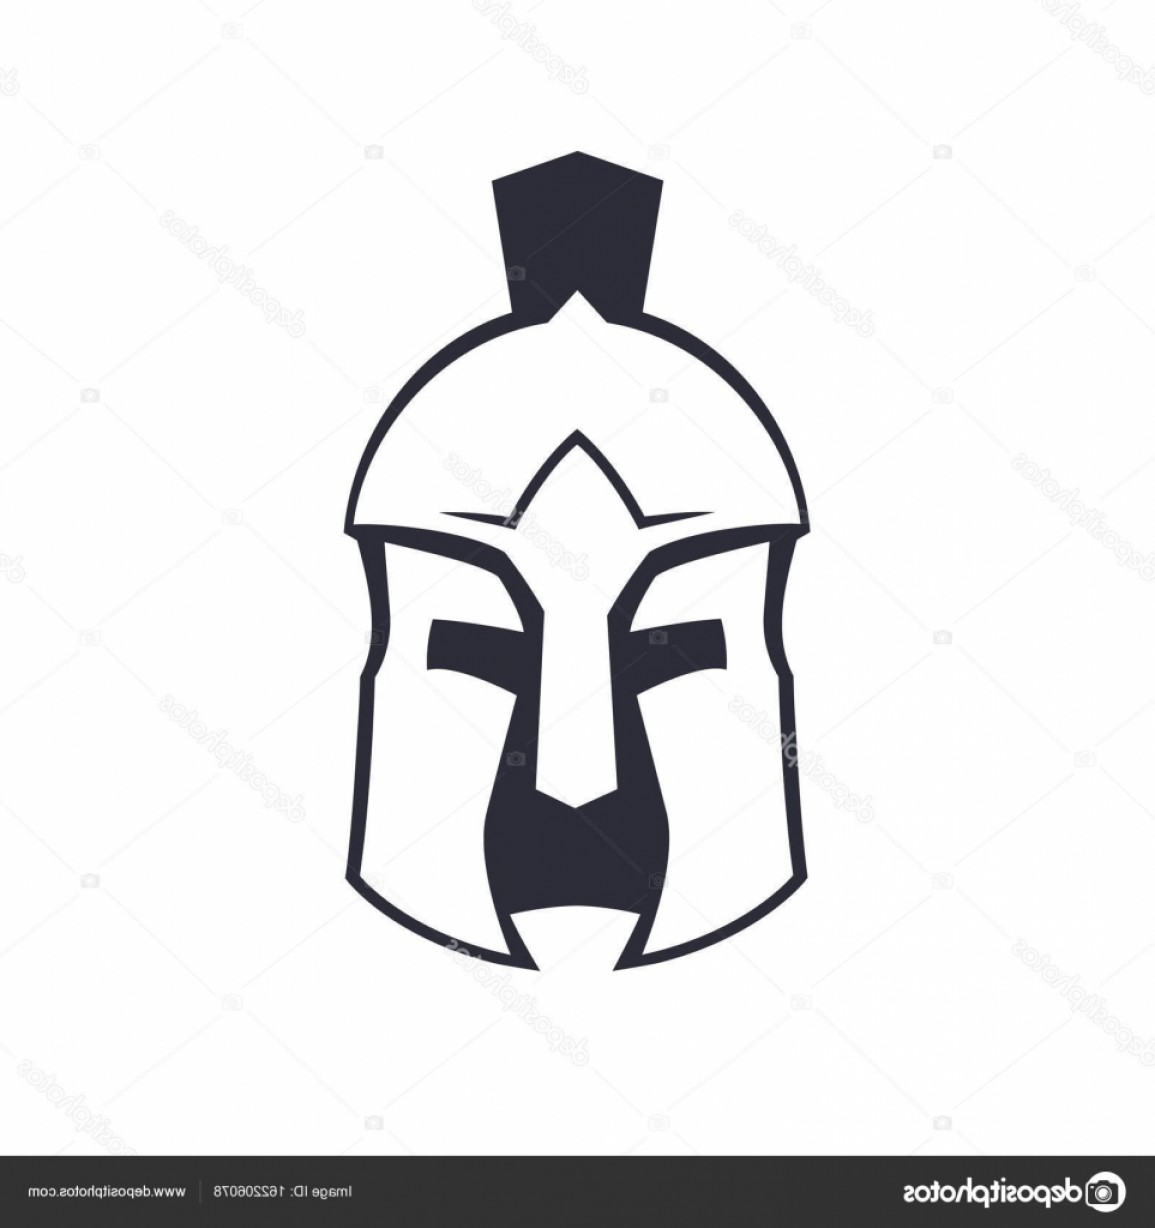 Boba Fett Vector Black And White: Stock Illustration Spartan Greek Helmet Over White